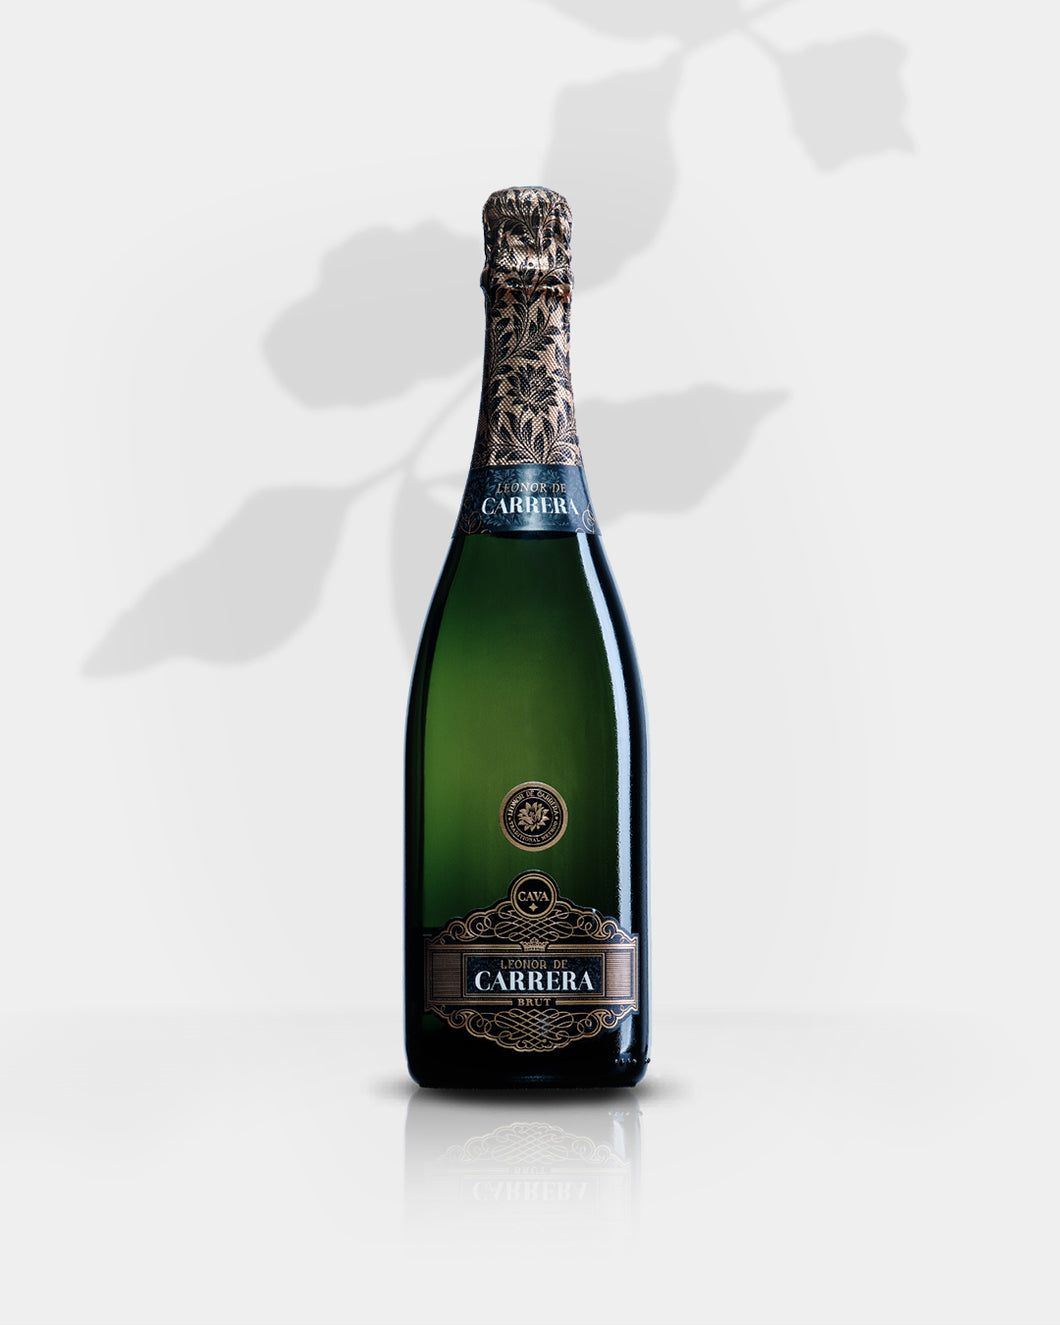 Leonor de Carrera Cava 'Brut' NV